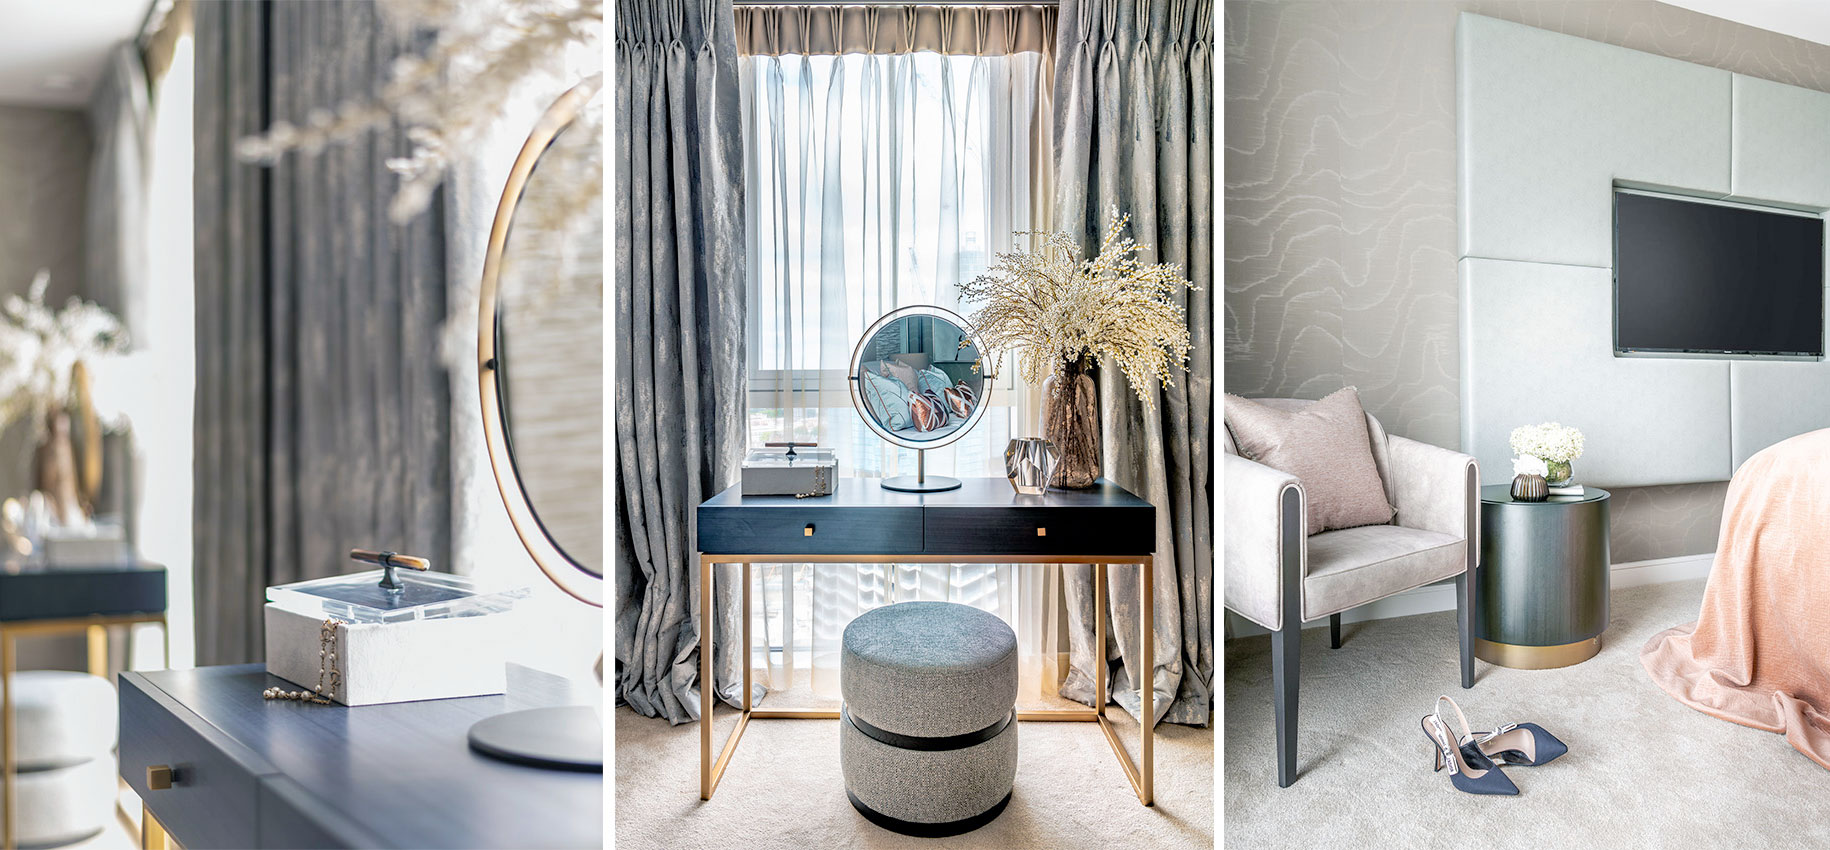 Tailored Living Interiors • Gladwin Tower |FINEST RESIDENCES